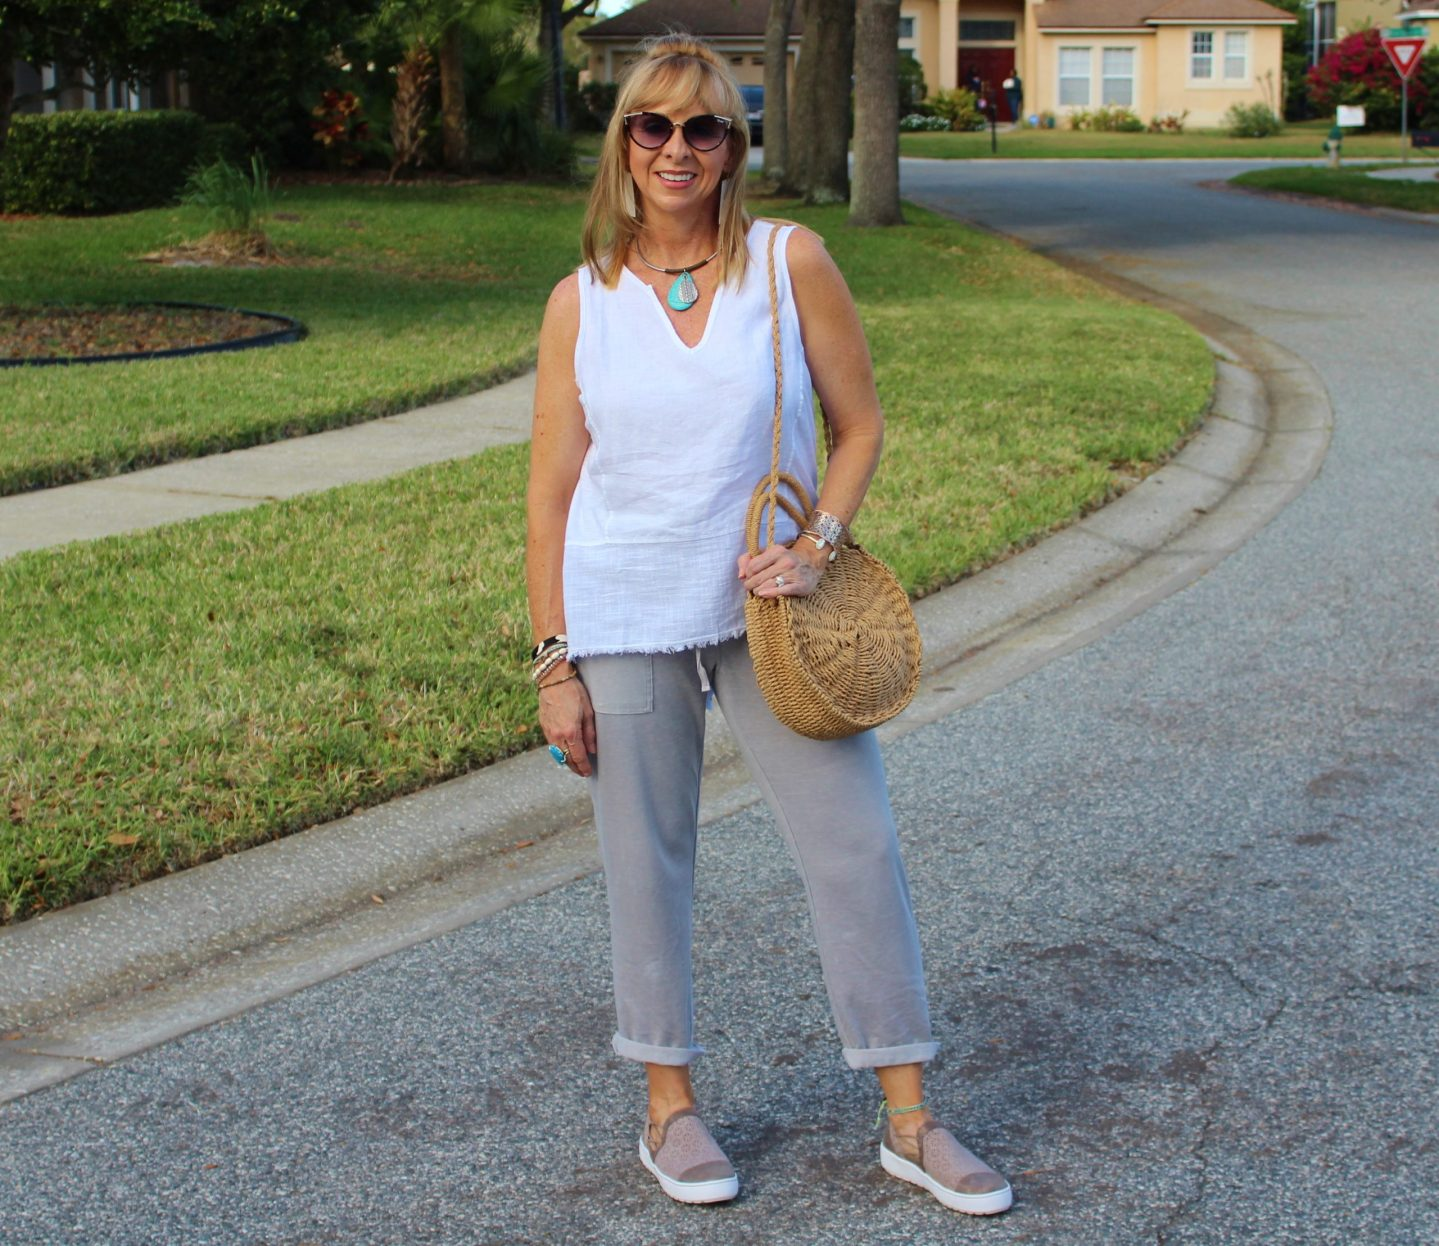 Comfortable and chic clothes and shoes